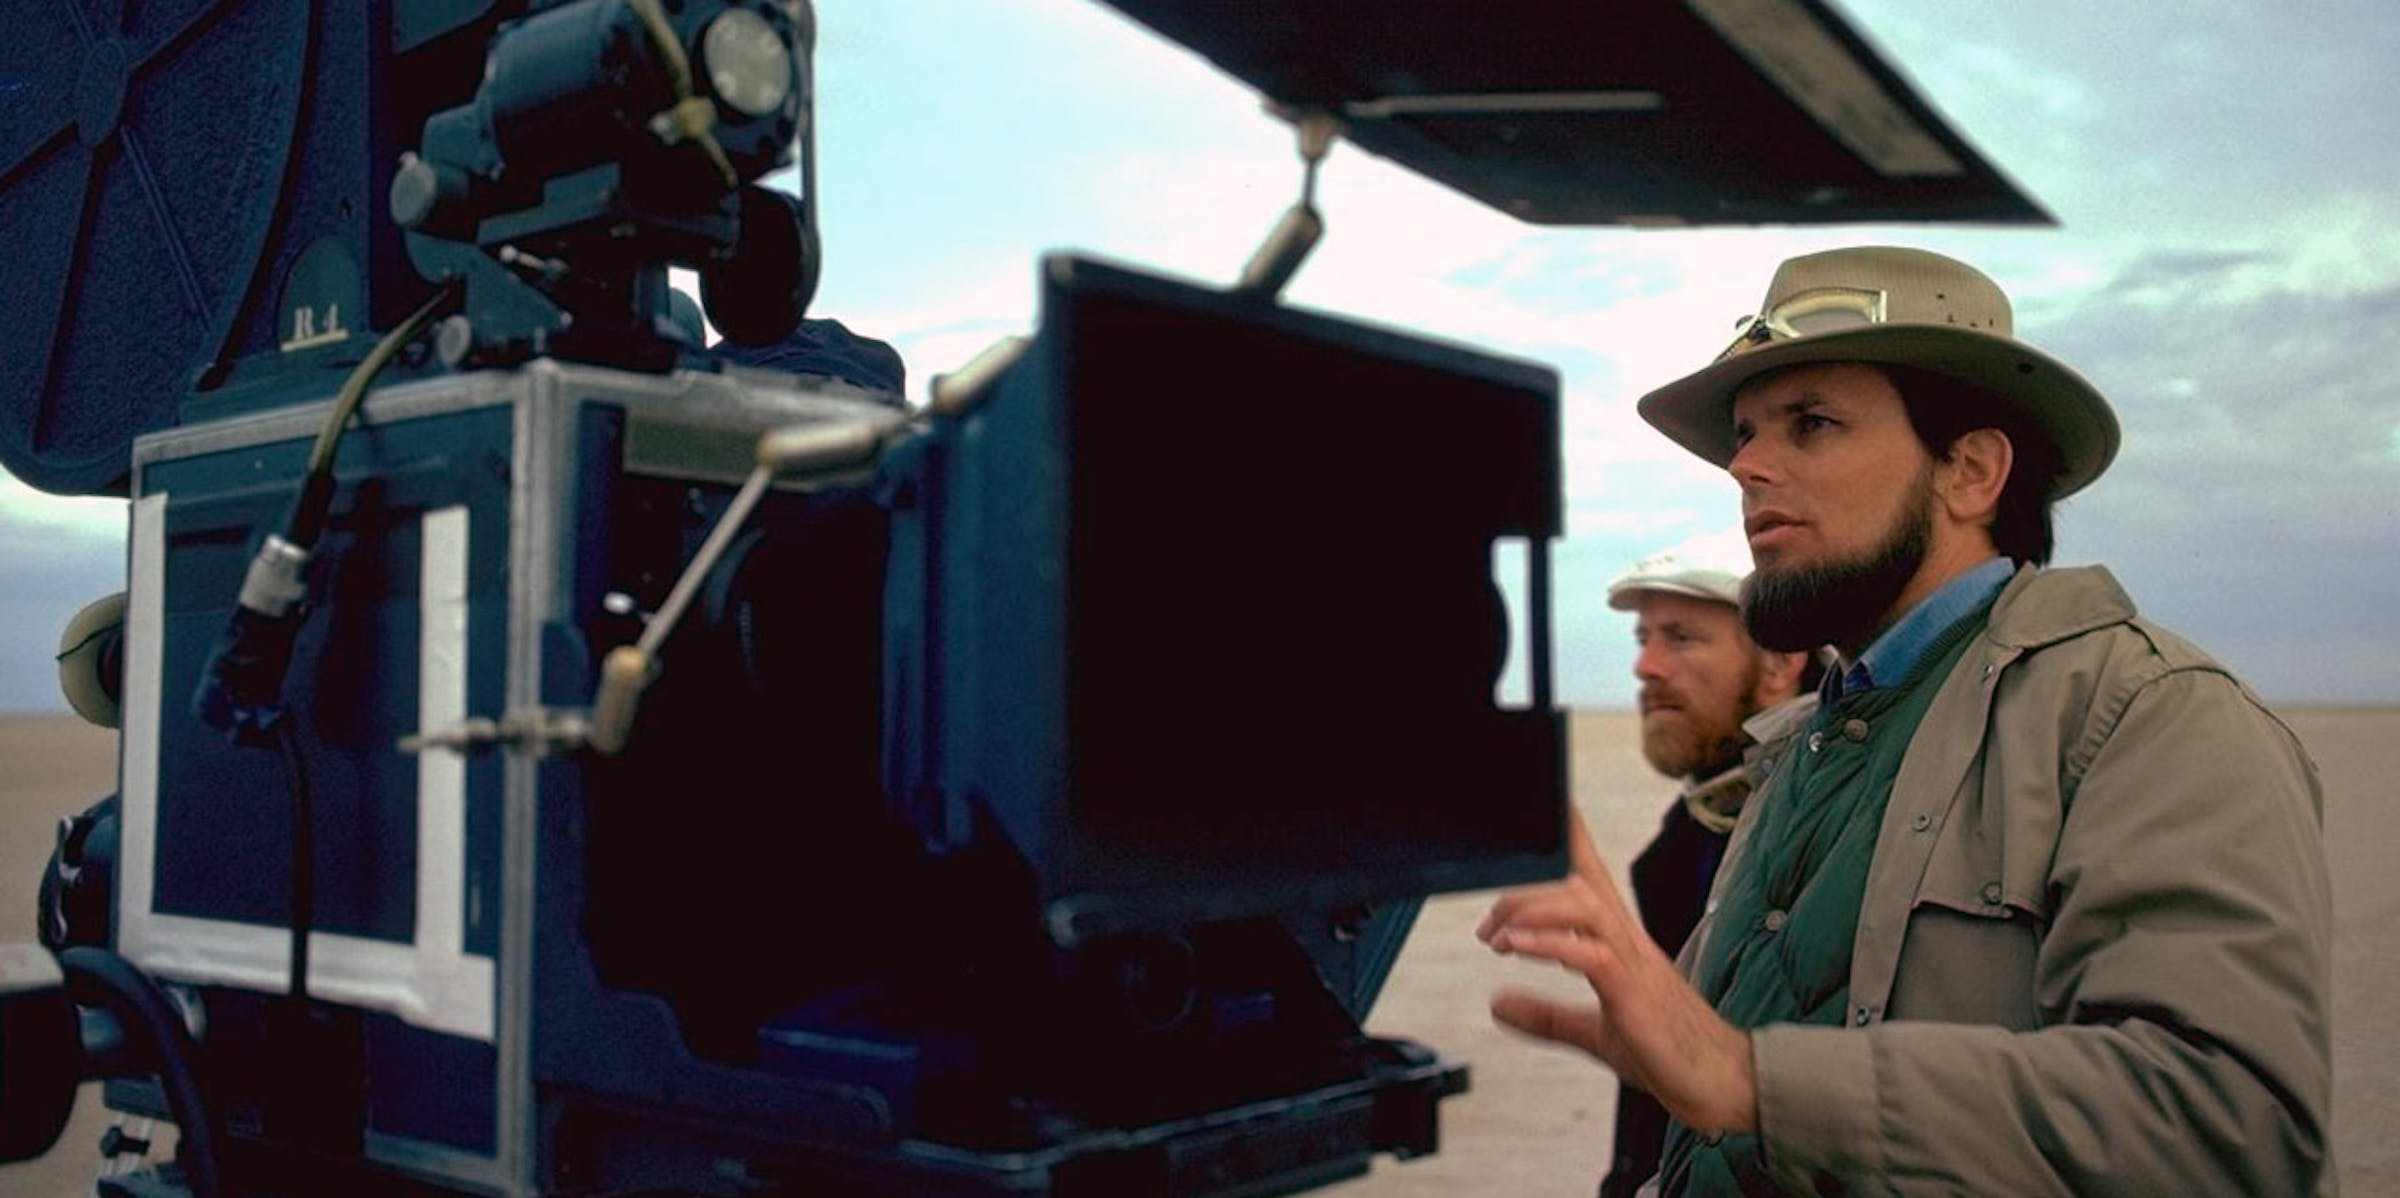 Gary Kurtz on the set of 'Star Wars' in 1976 (StarWars.com)